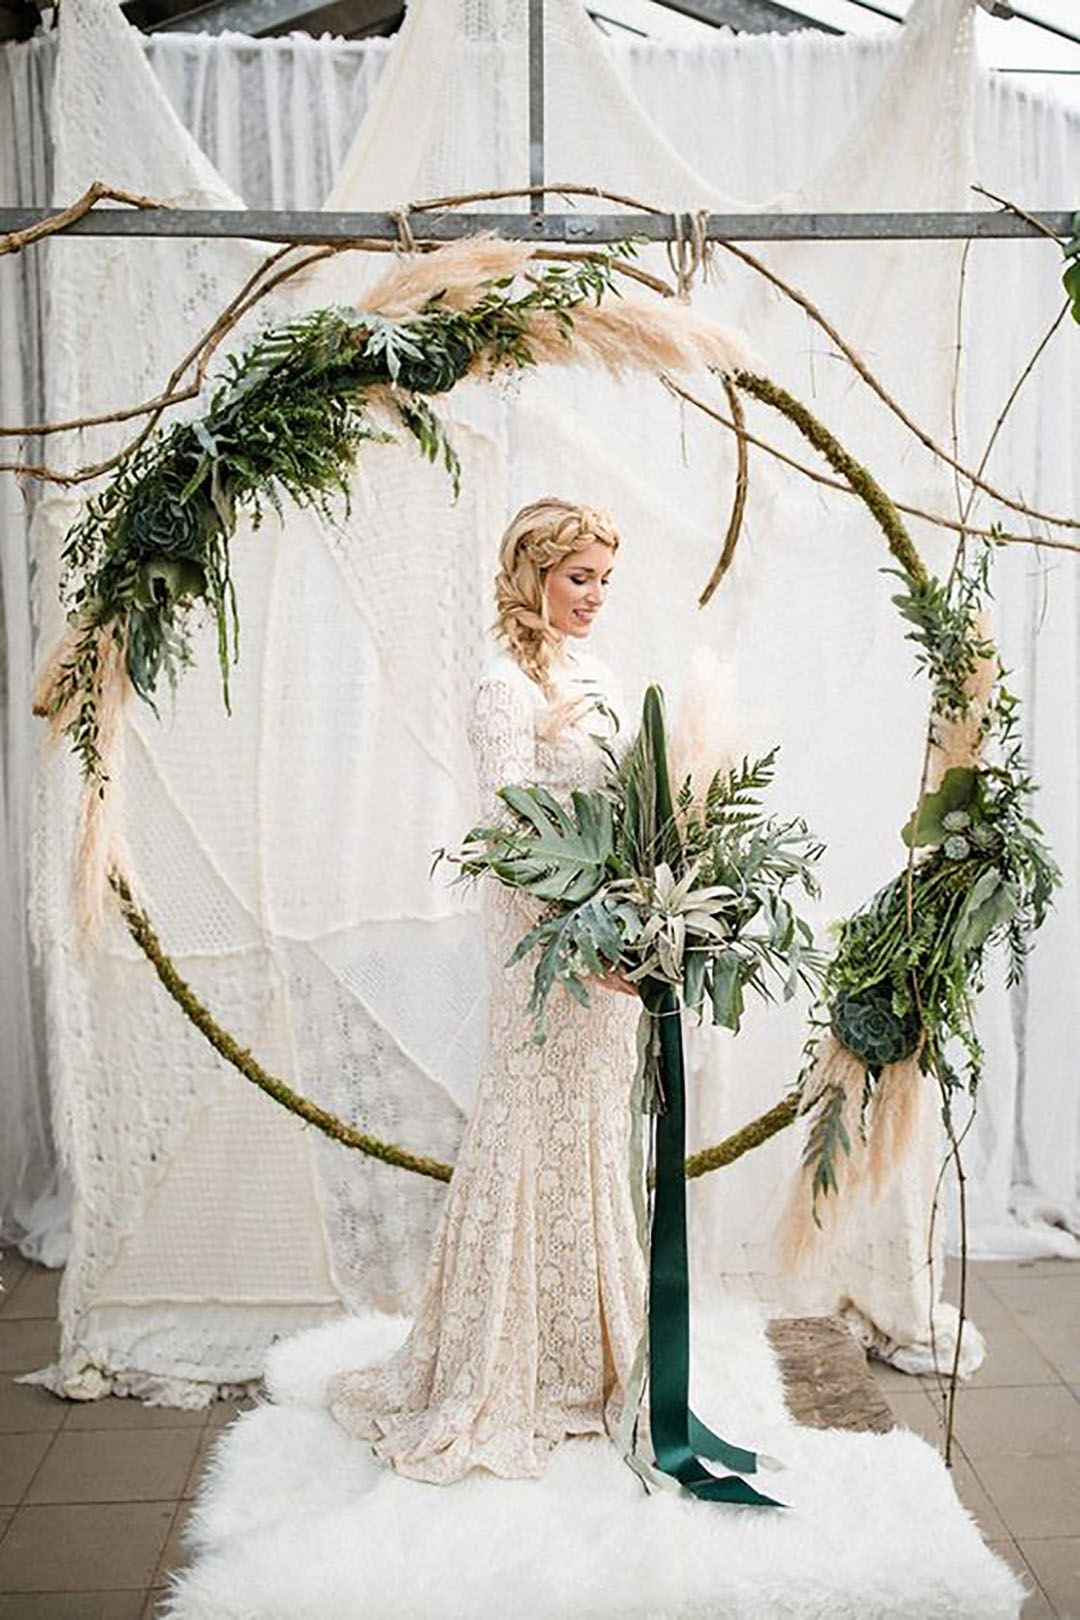 2018 decor trend are wedding wreaths the new ceremony arch 2018 decor trend are wedding wreaths the new ceremony arch junglespirit Choice Image